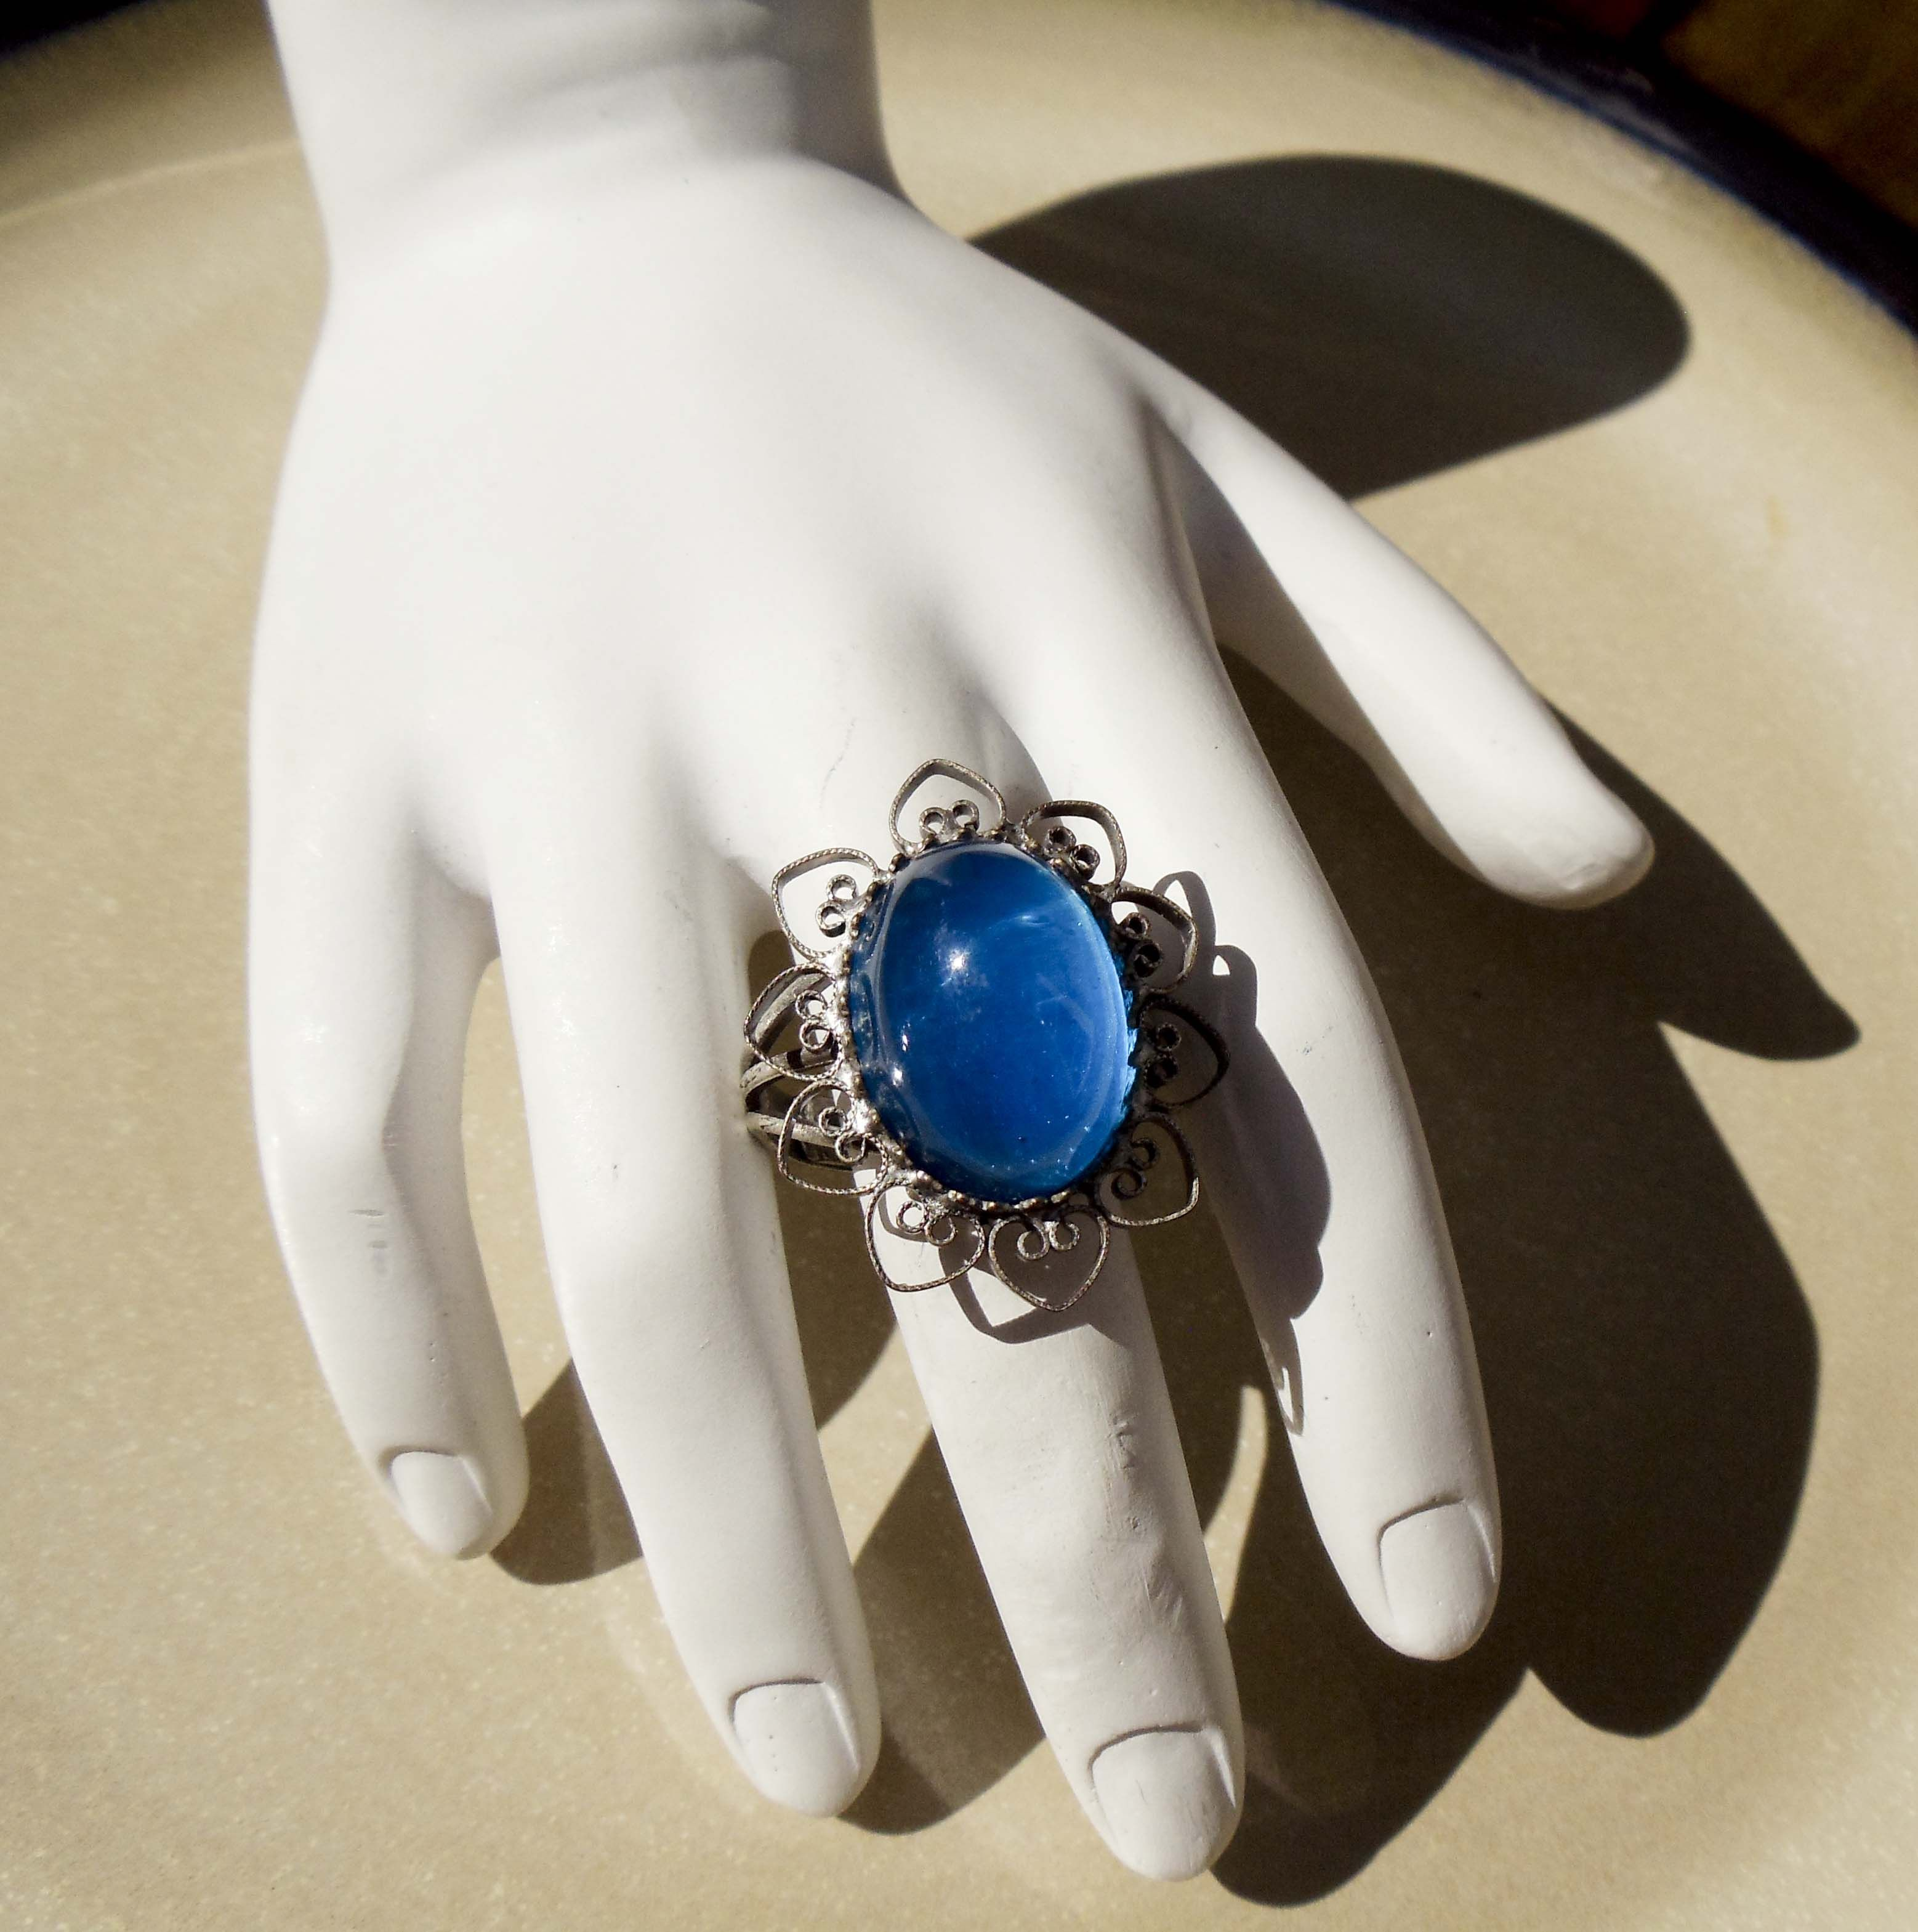 Win this adjustable vintage ring from Pagan Cellar Jewelry! Ended 7/15